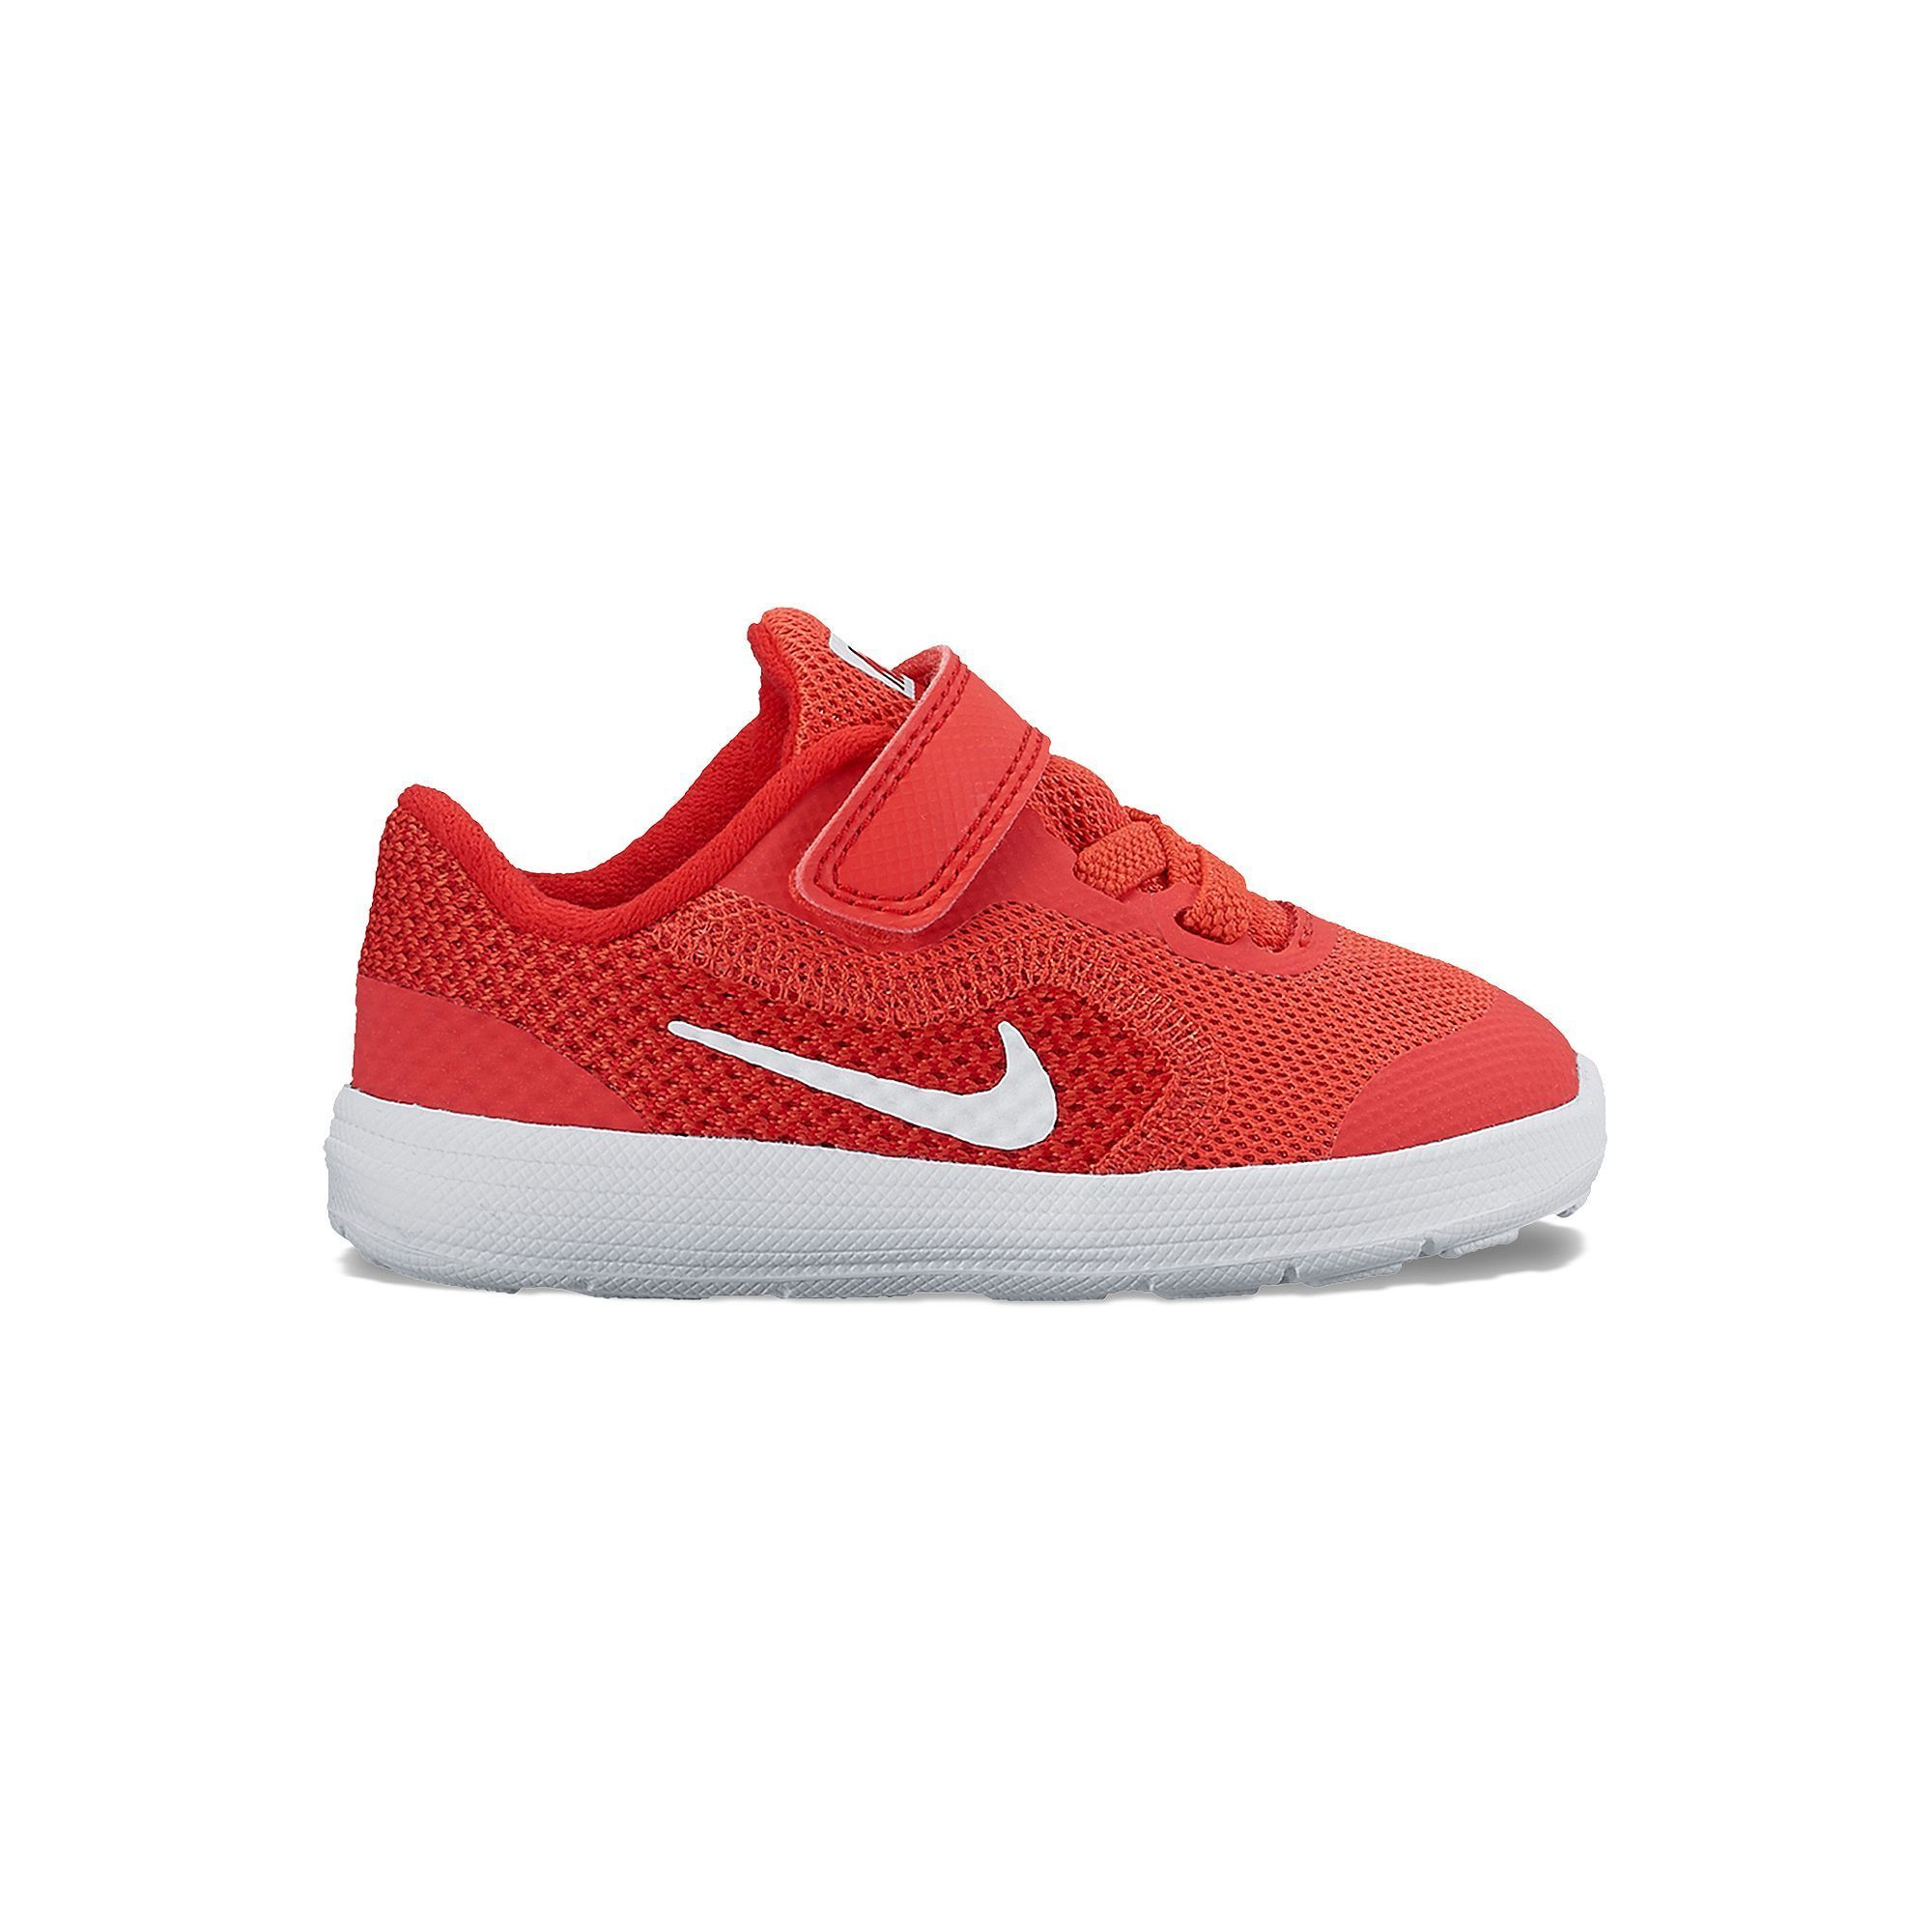 Nike Revolution 3 Baby Toddler Boys Athletic Shoes Size 10 T